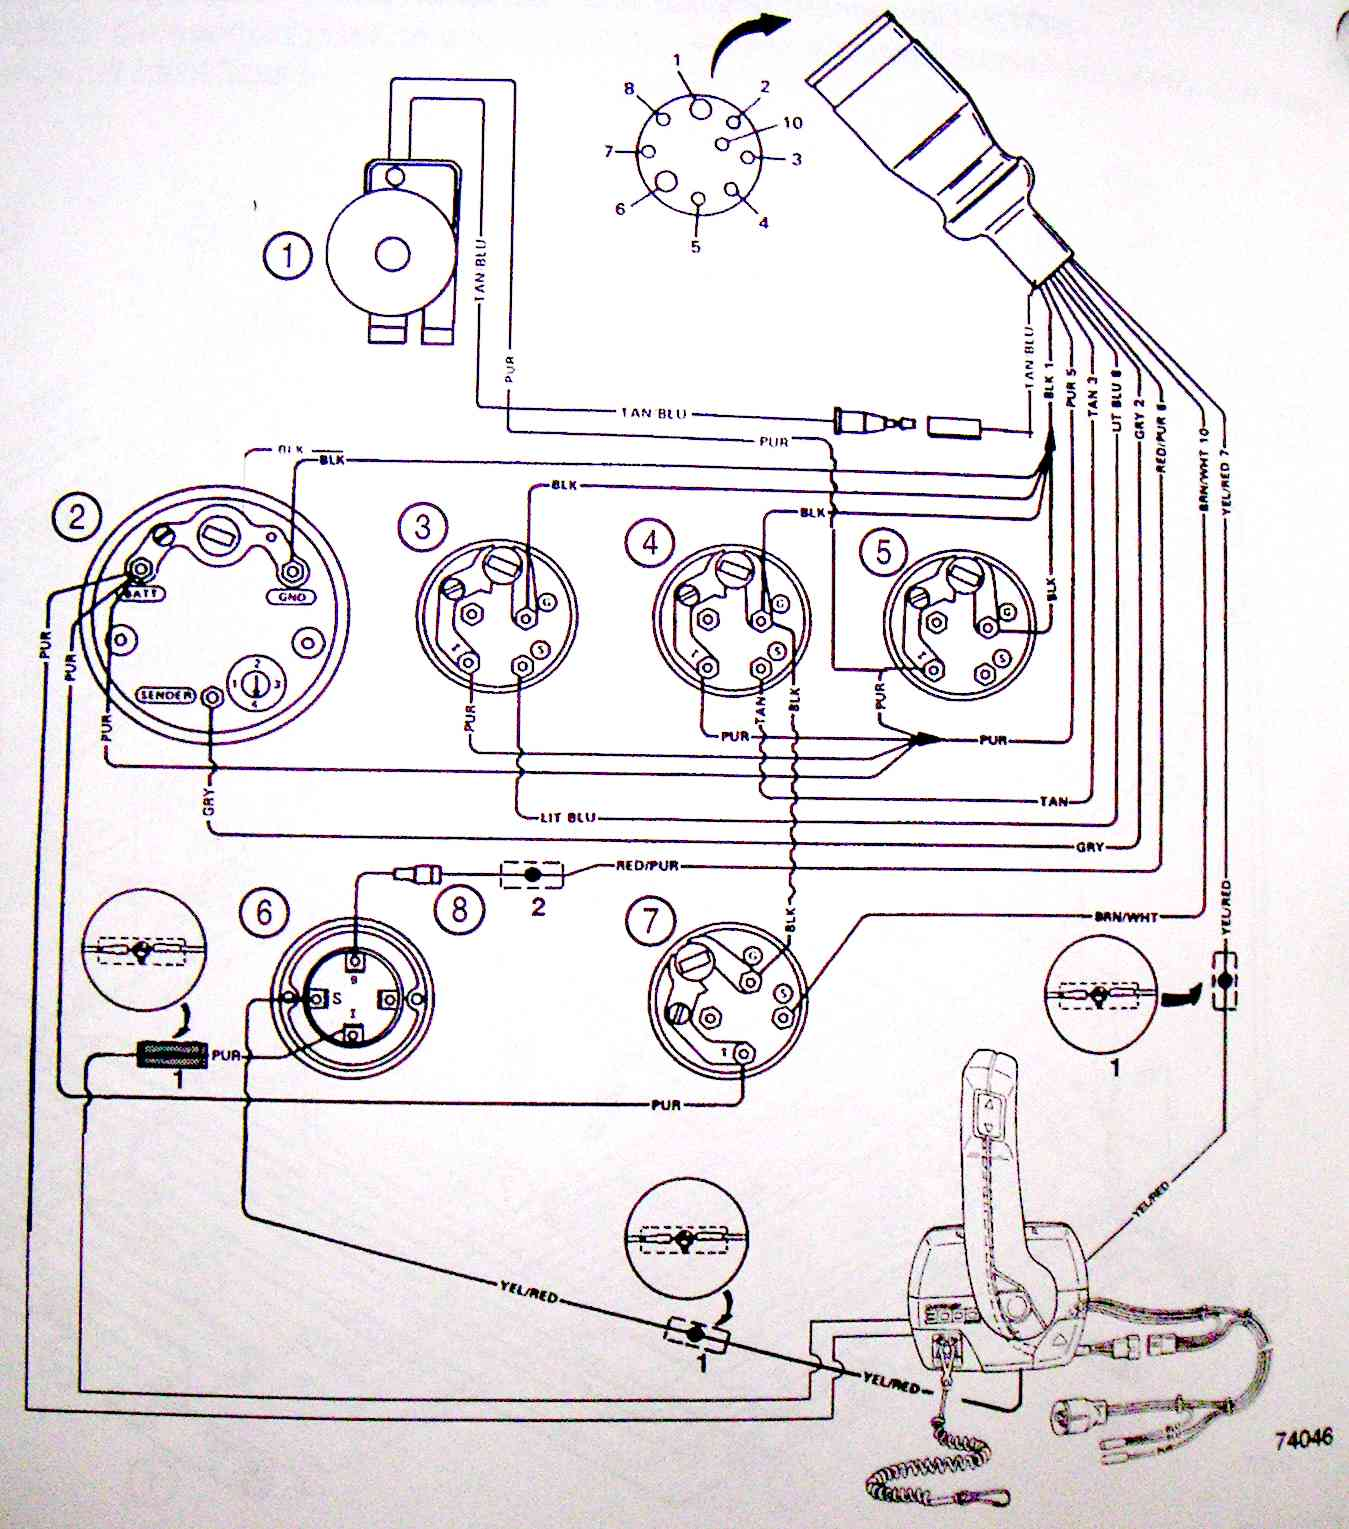 Mercruiser Wiring Harness Diagram Best Electrical Circuit Mercury 350 Engine Library Rh 2 Codingcommunity De 10 Pin